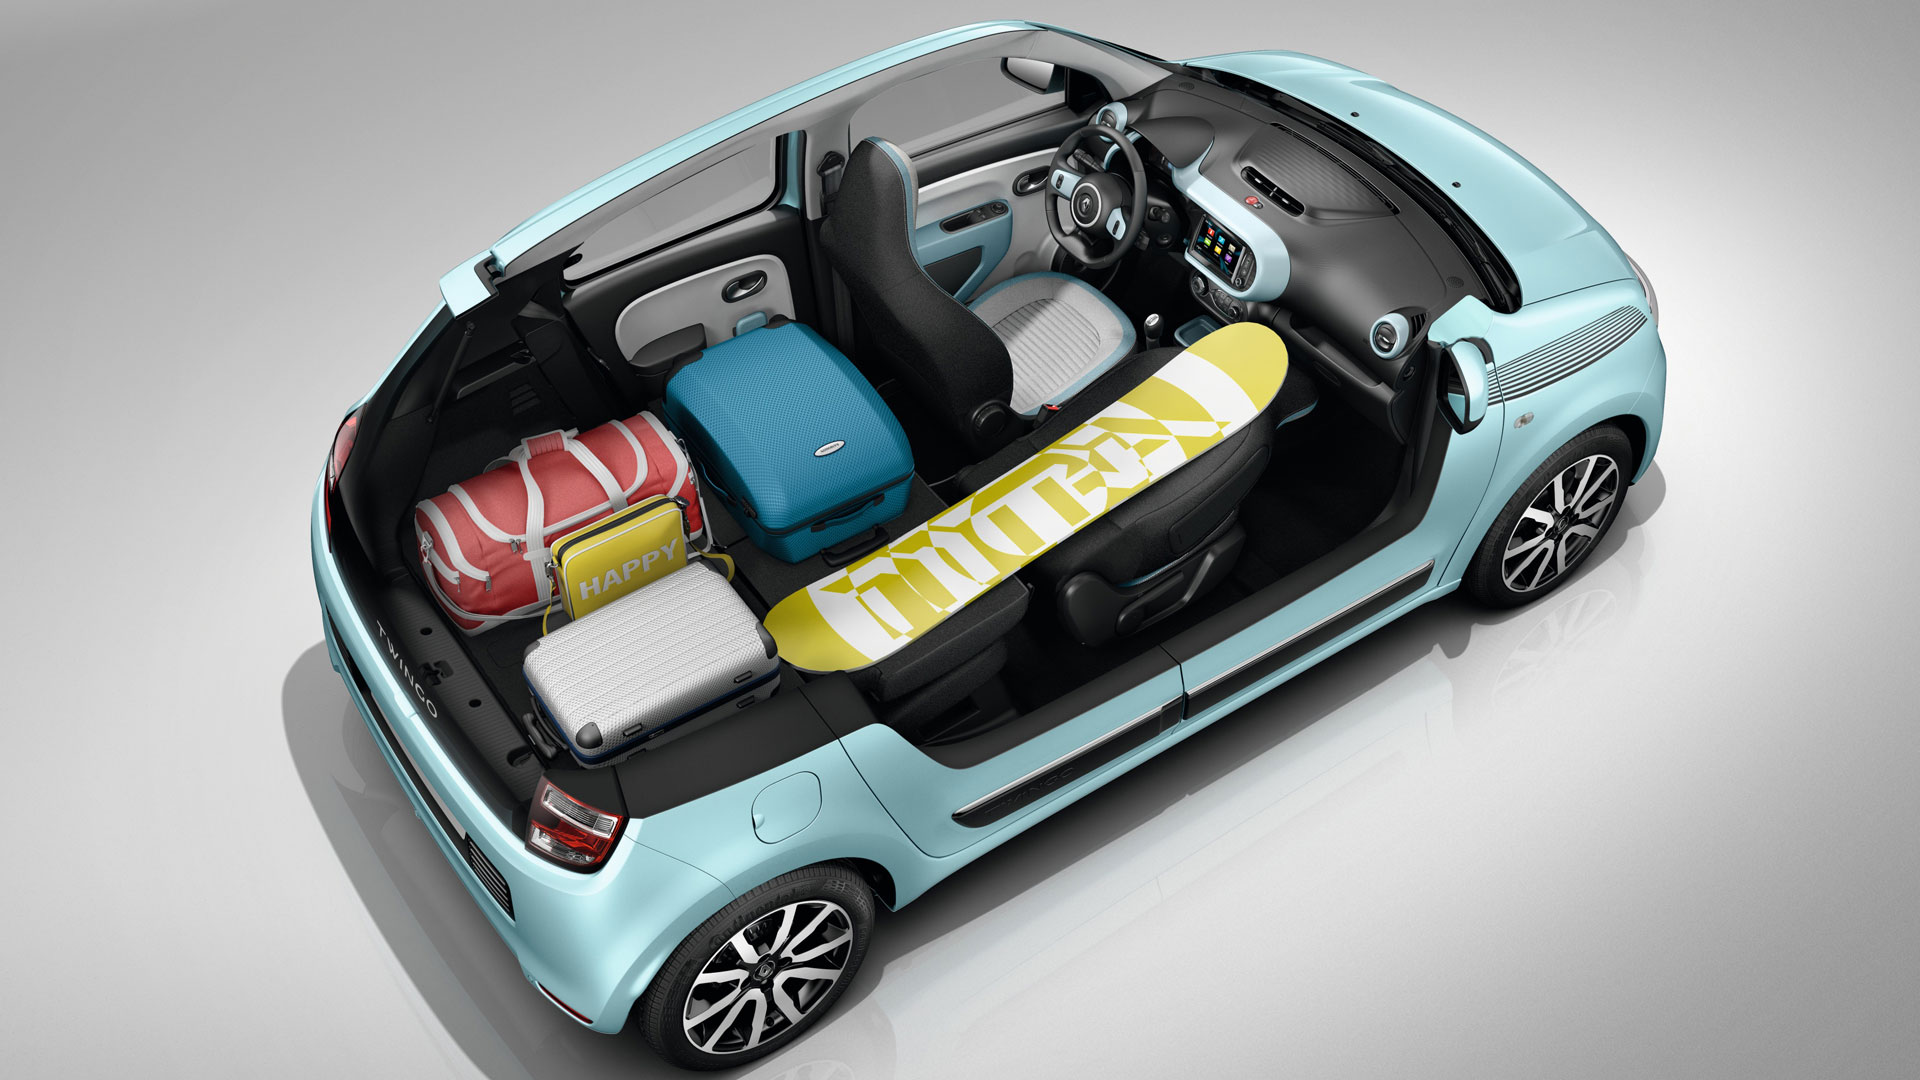 nouvelle renault twingo renault saint avold. Black Bedroom Furniture Sets. Home Design Ideas